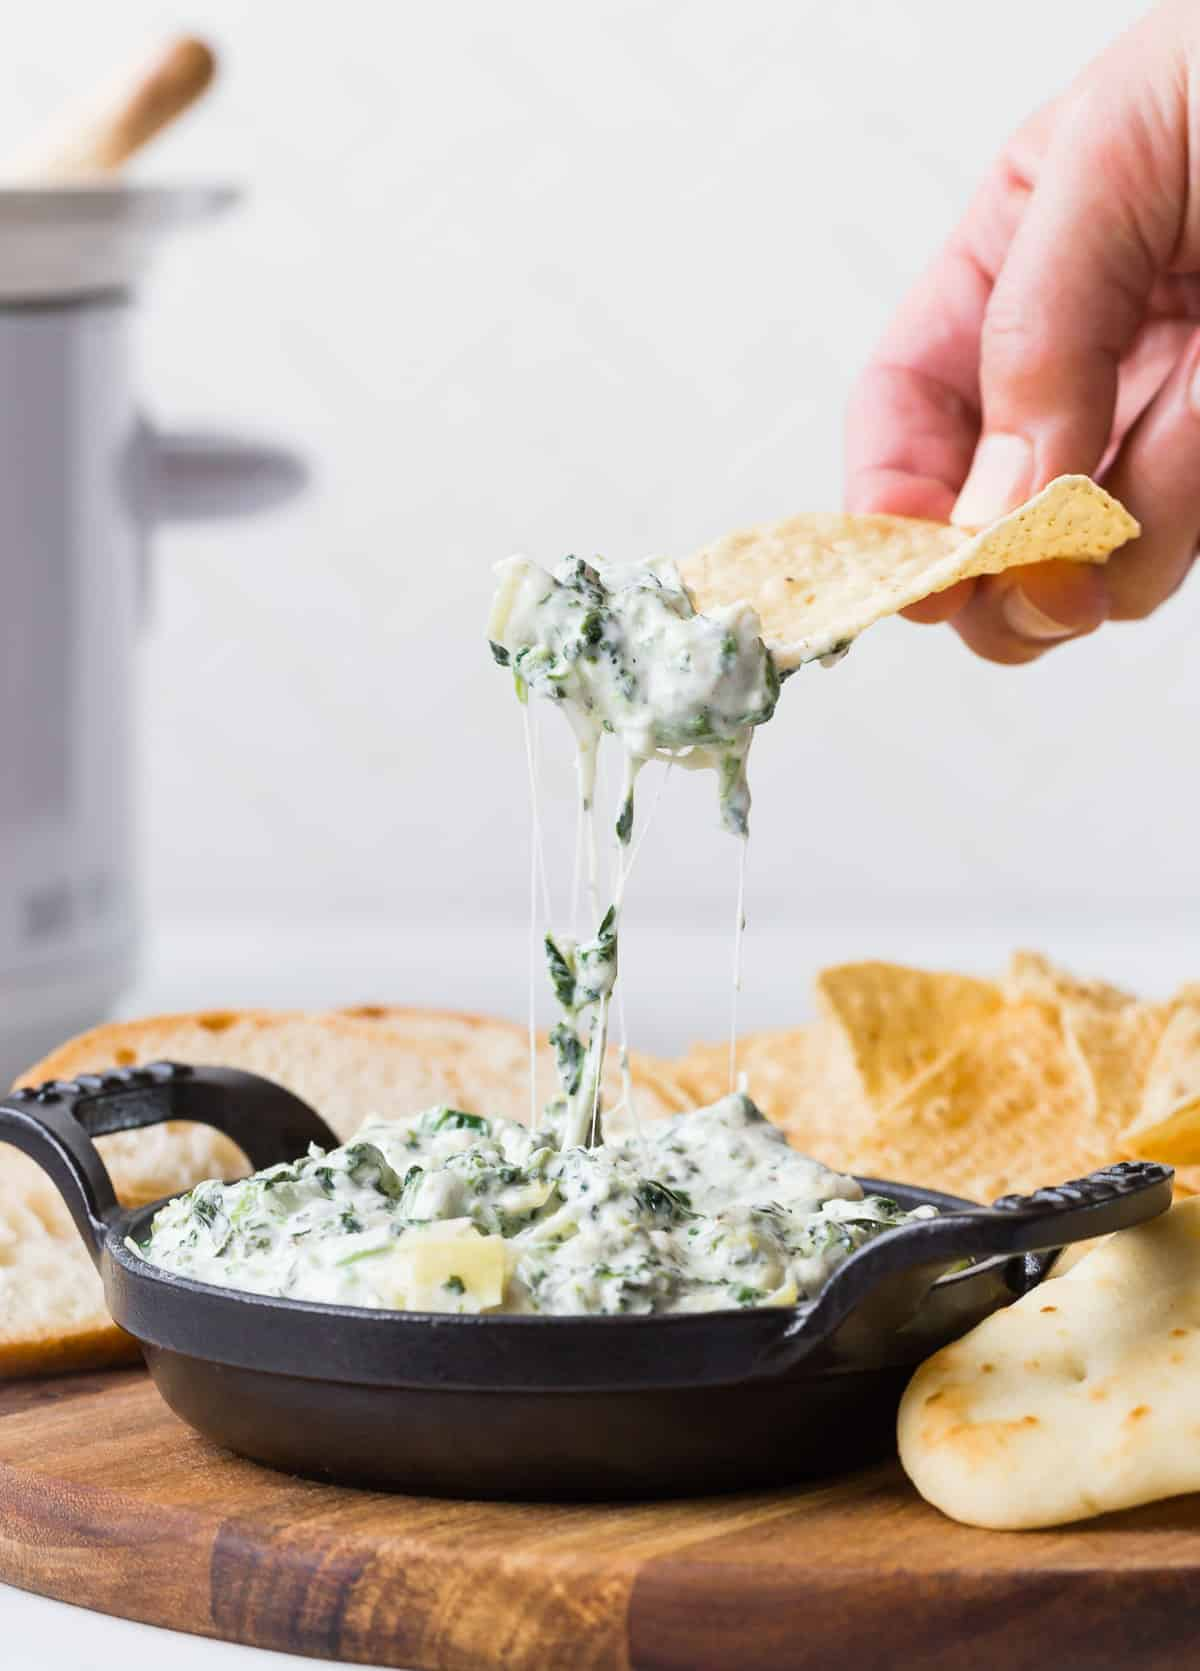 Chip being pulled up from a dish of spinach dip.